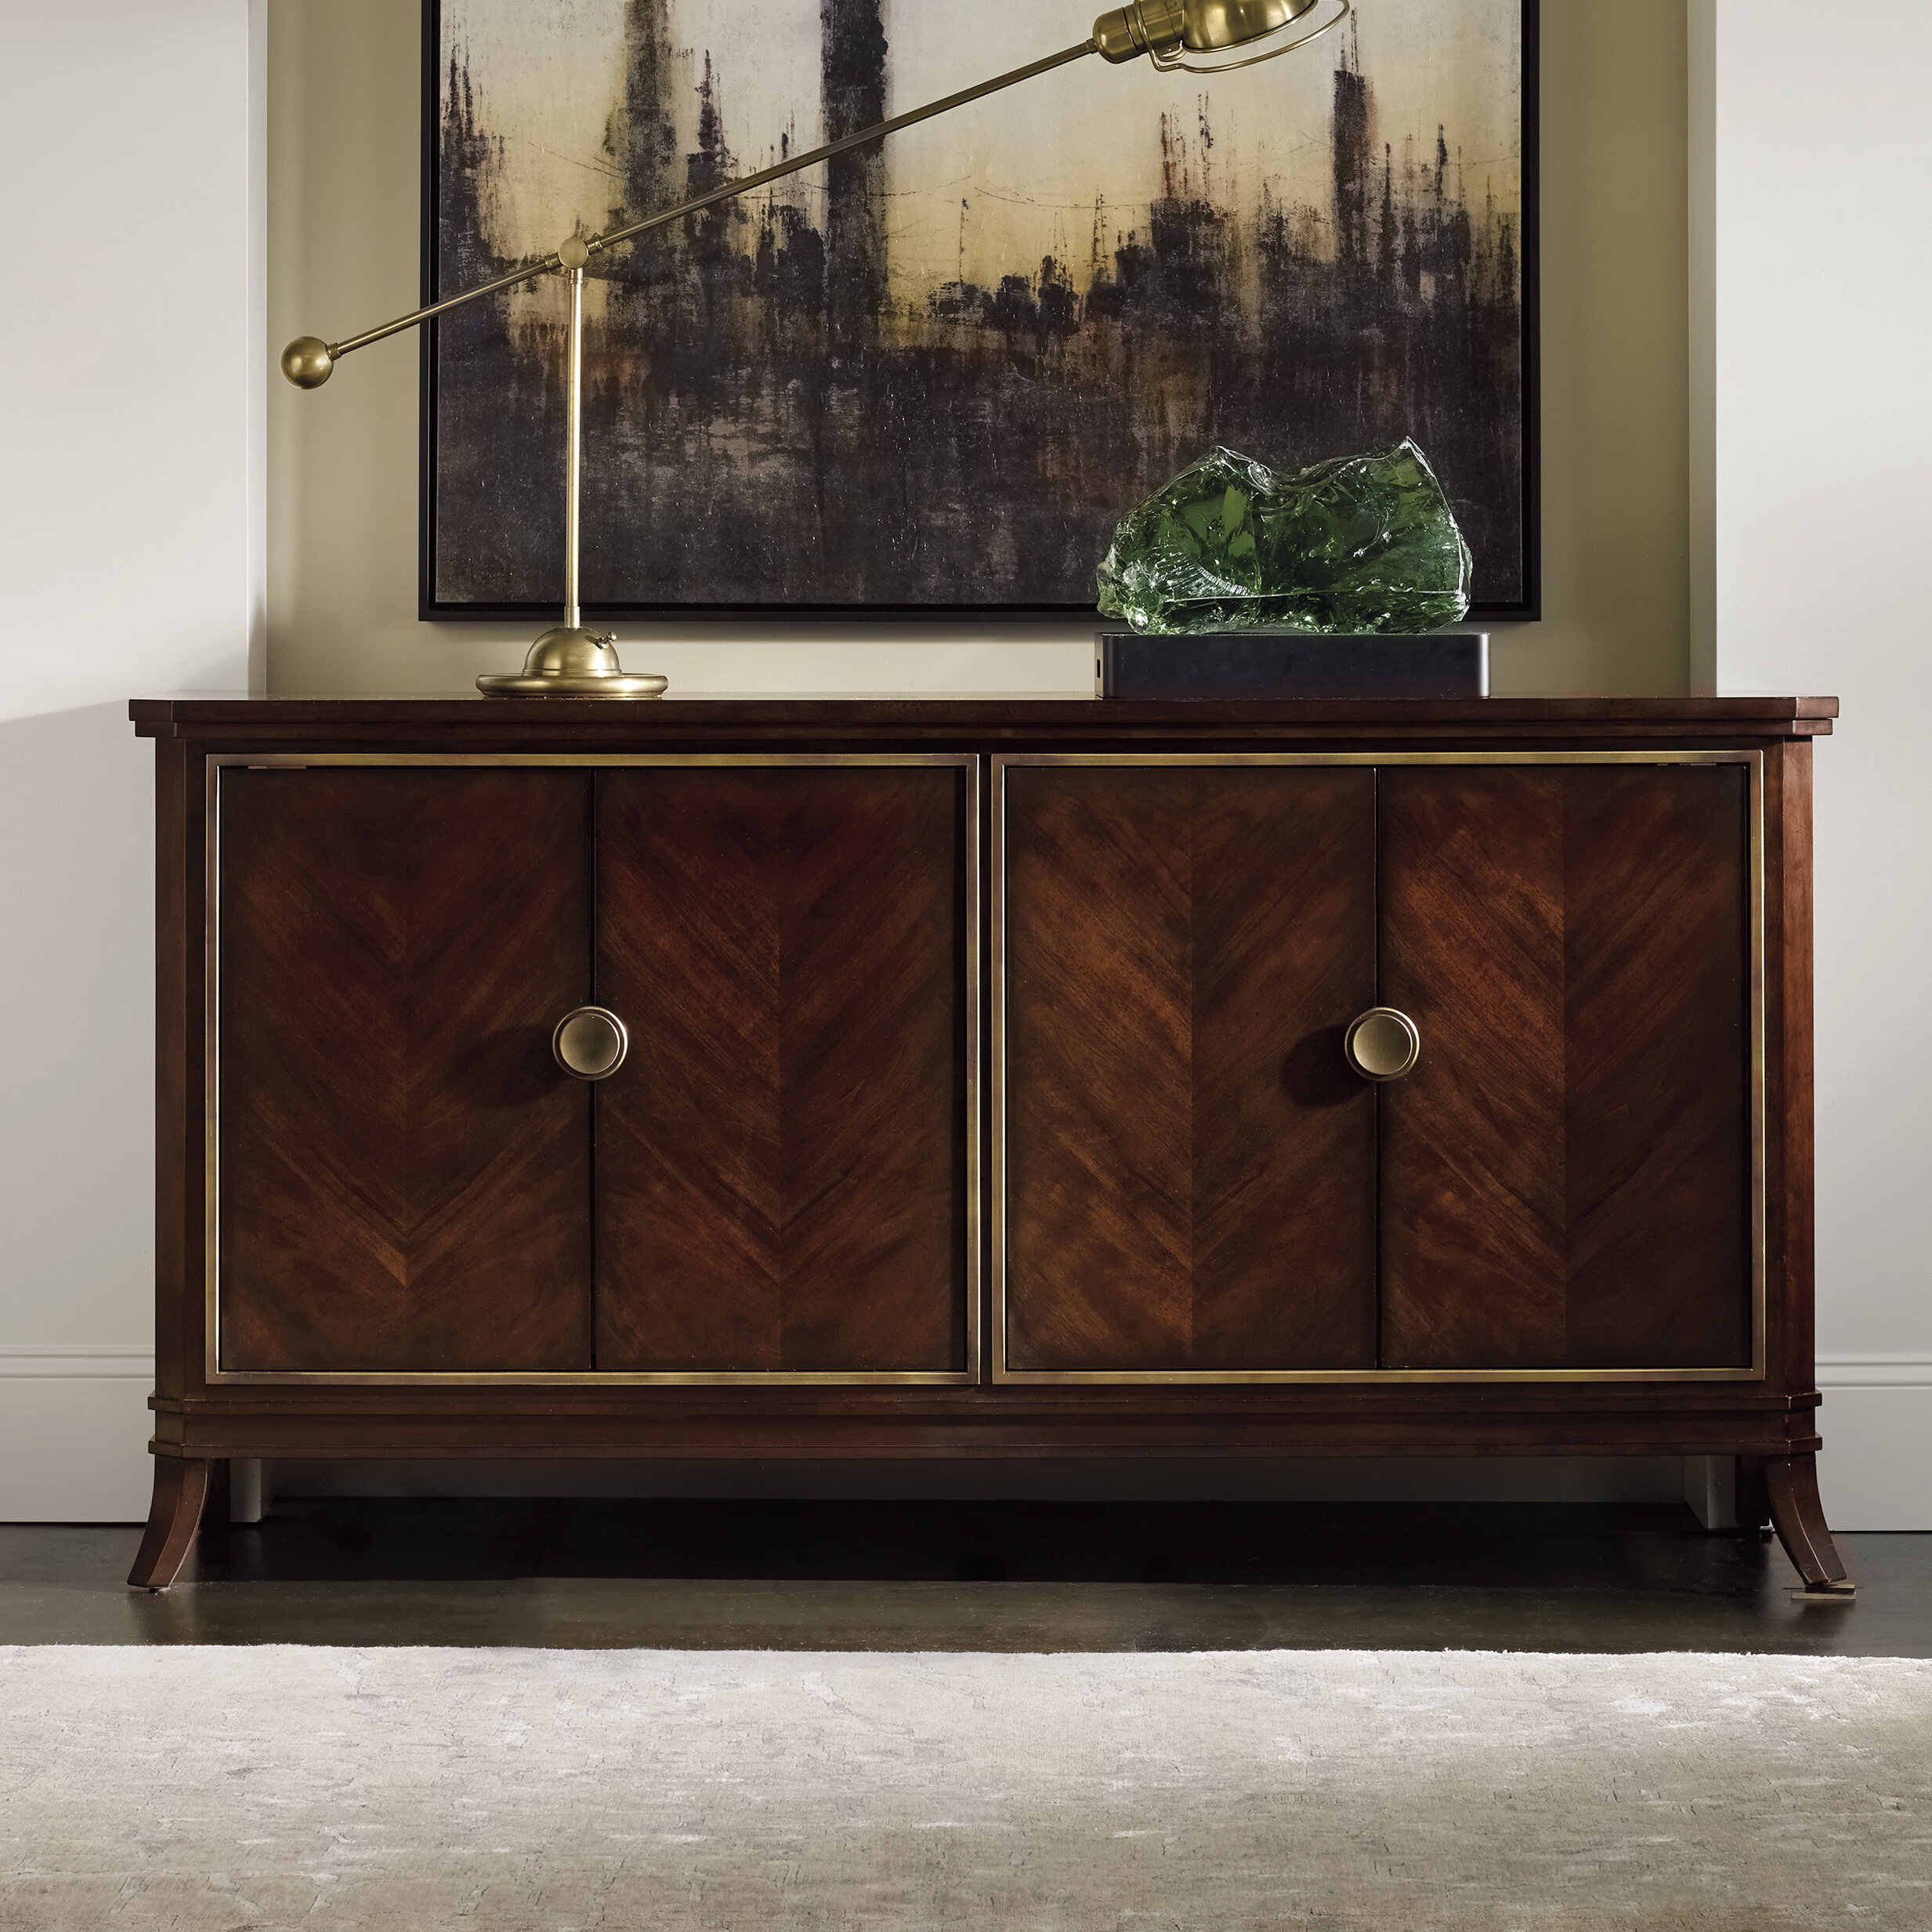 Darby Home Co Freemont Sideboard & Reviews | Wayfair in Palisade Sideboards (Image 4 of 30)